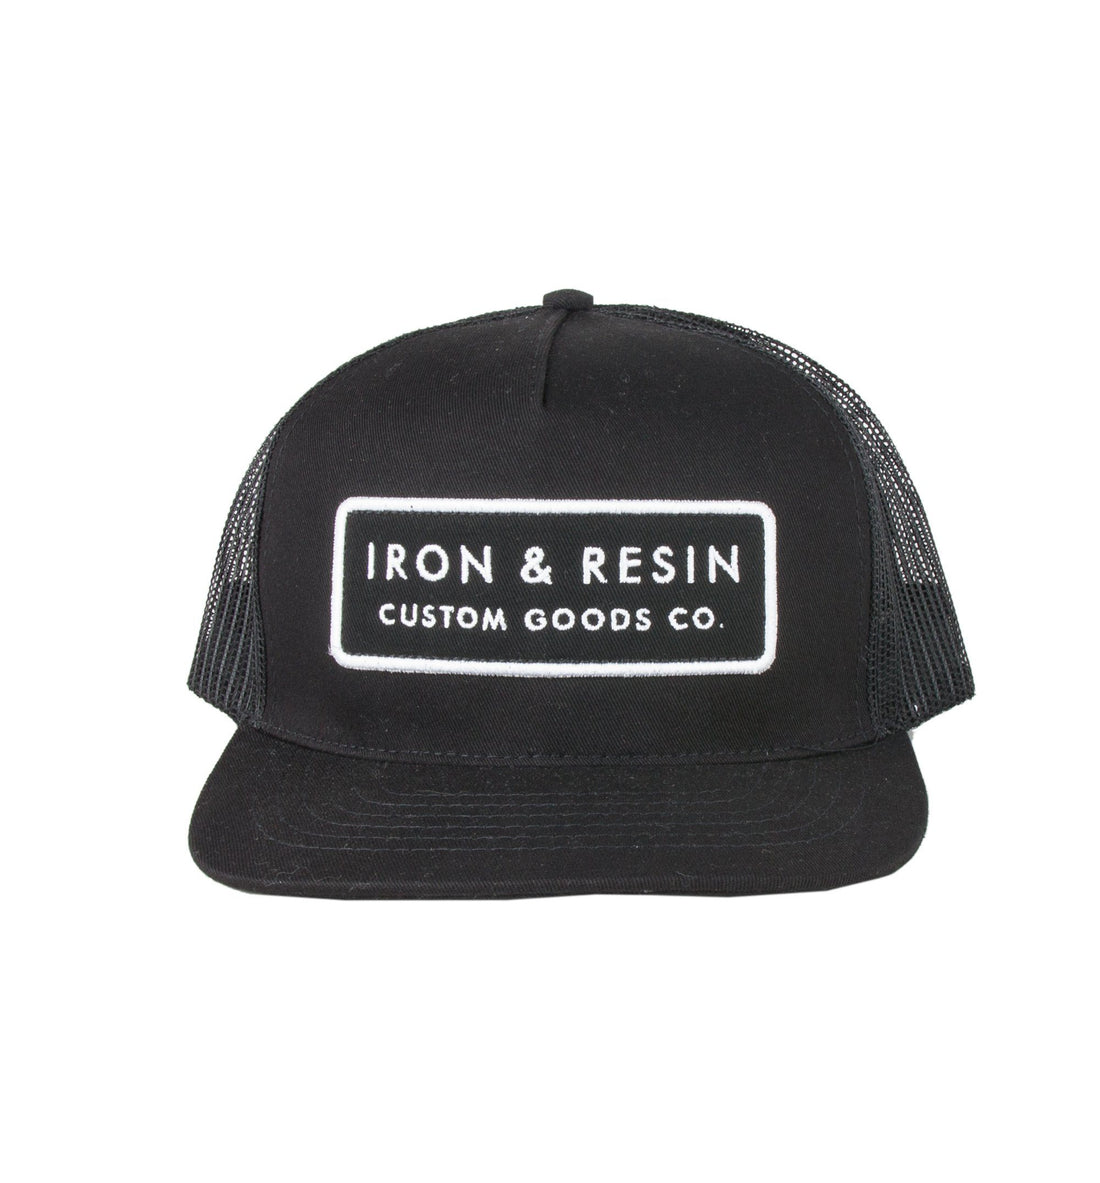 Standard Hat - Headwear - Iron and Resin